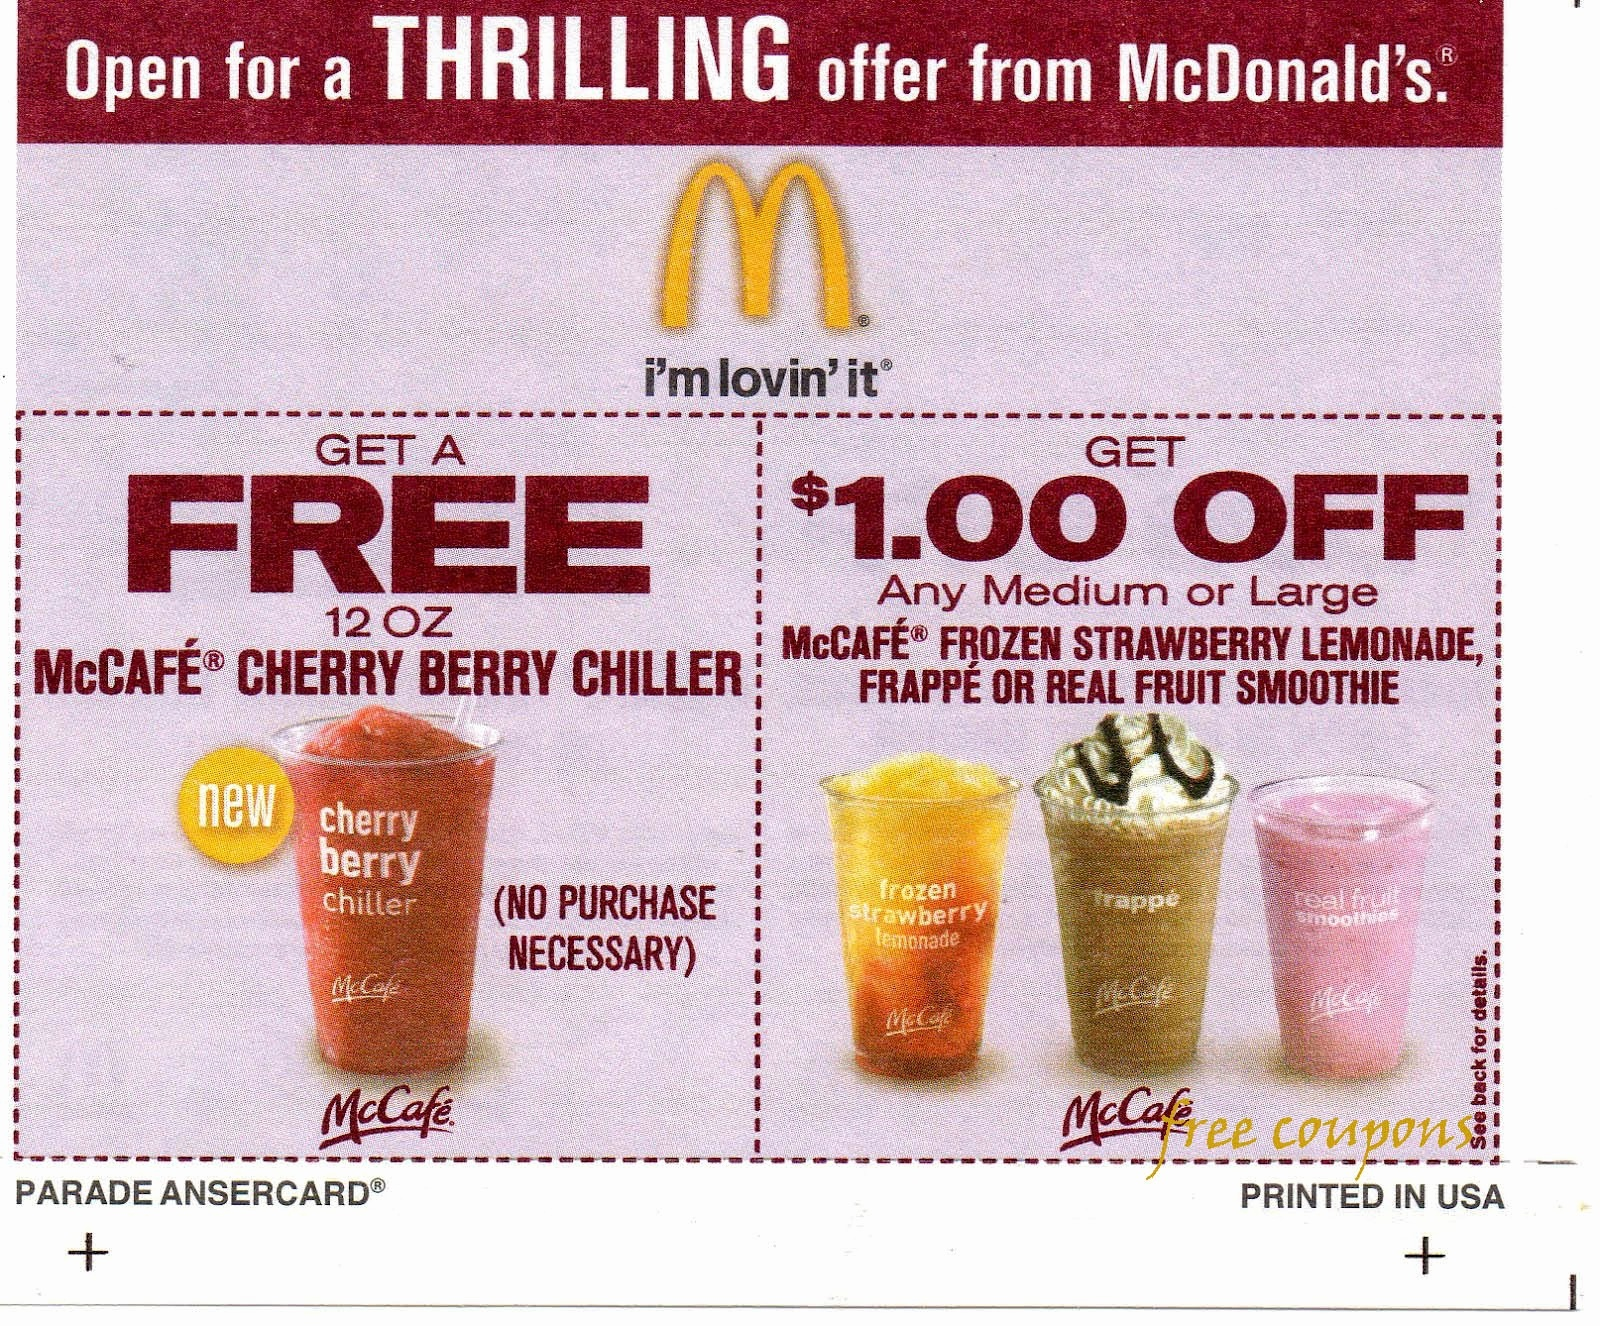 Coupons Printable And Mcdonalds Bogo Mcafe Coupon – Rtrs.online - Free Mcdonalds Smoothie Printable Coupon